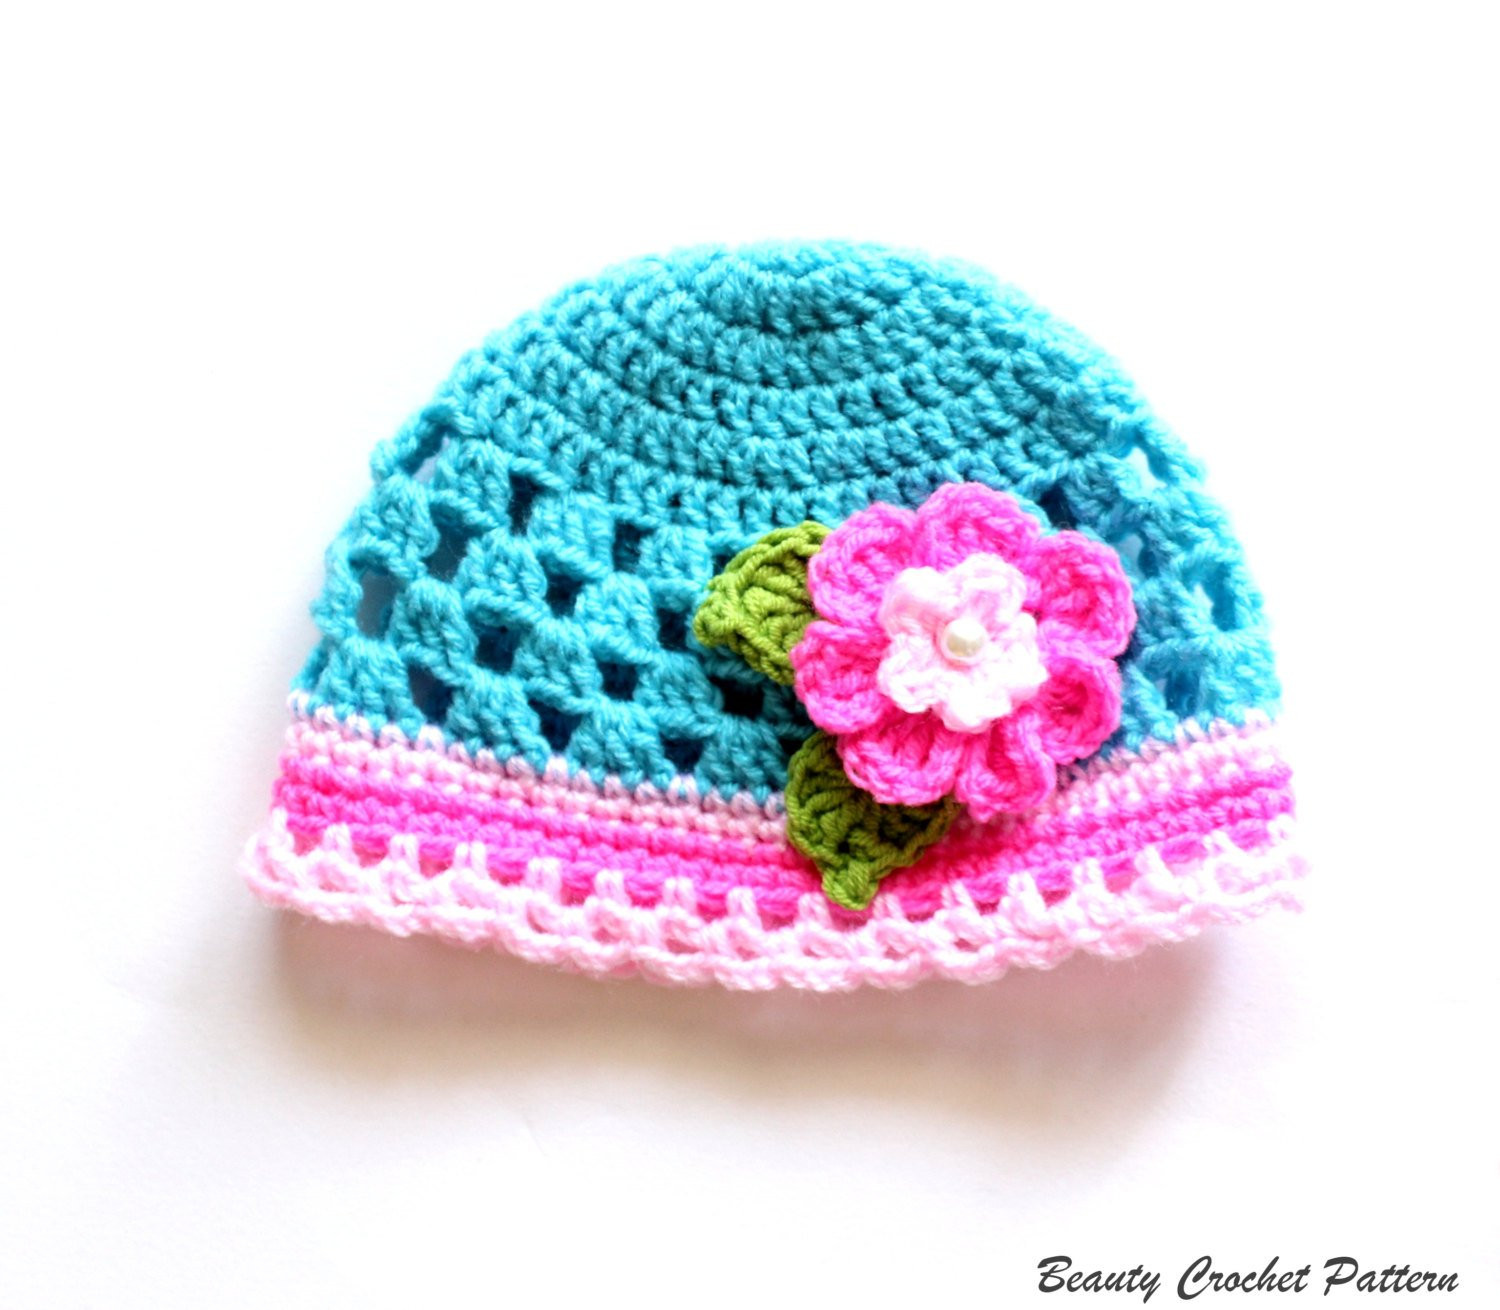 Newborn Baby Hat Crochet Pattern Awesome Baby Girl Hat Crochet Pattern Crochet Girls Hat Pattern Of Superb 44 Pictures Newborn Baby Hat Crochet Pattern